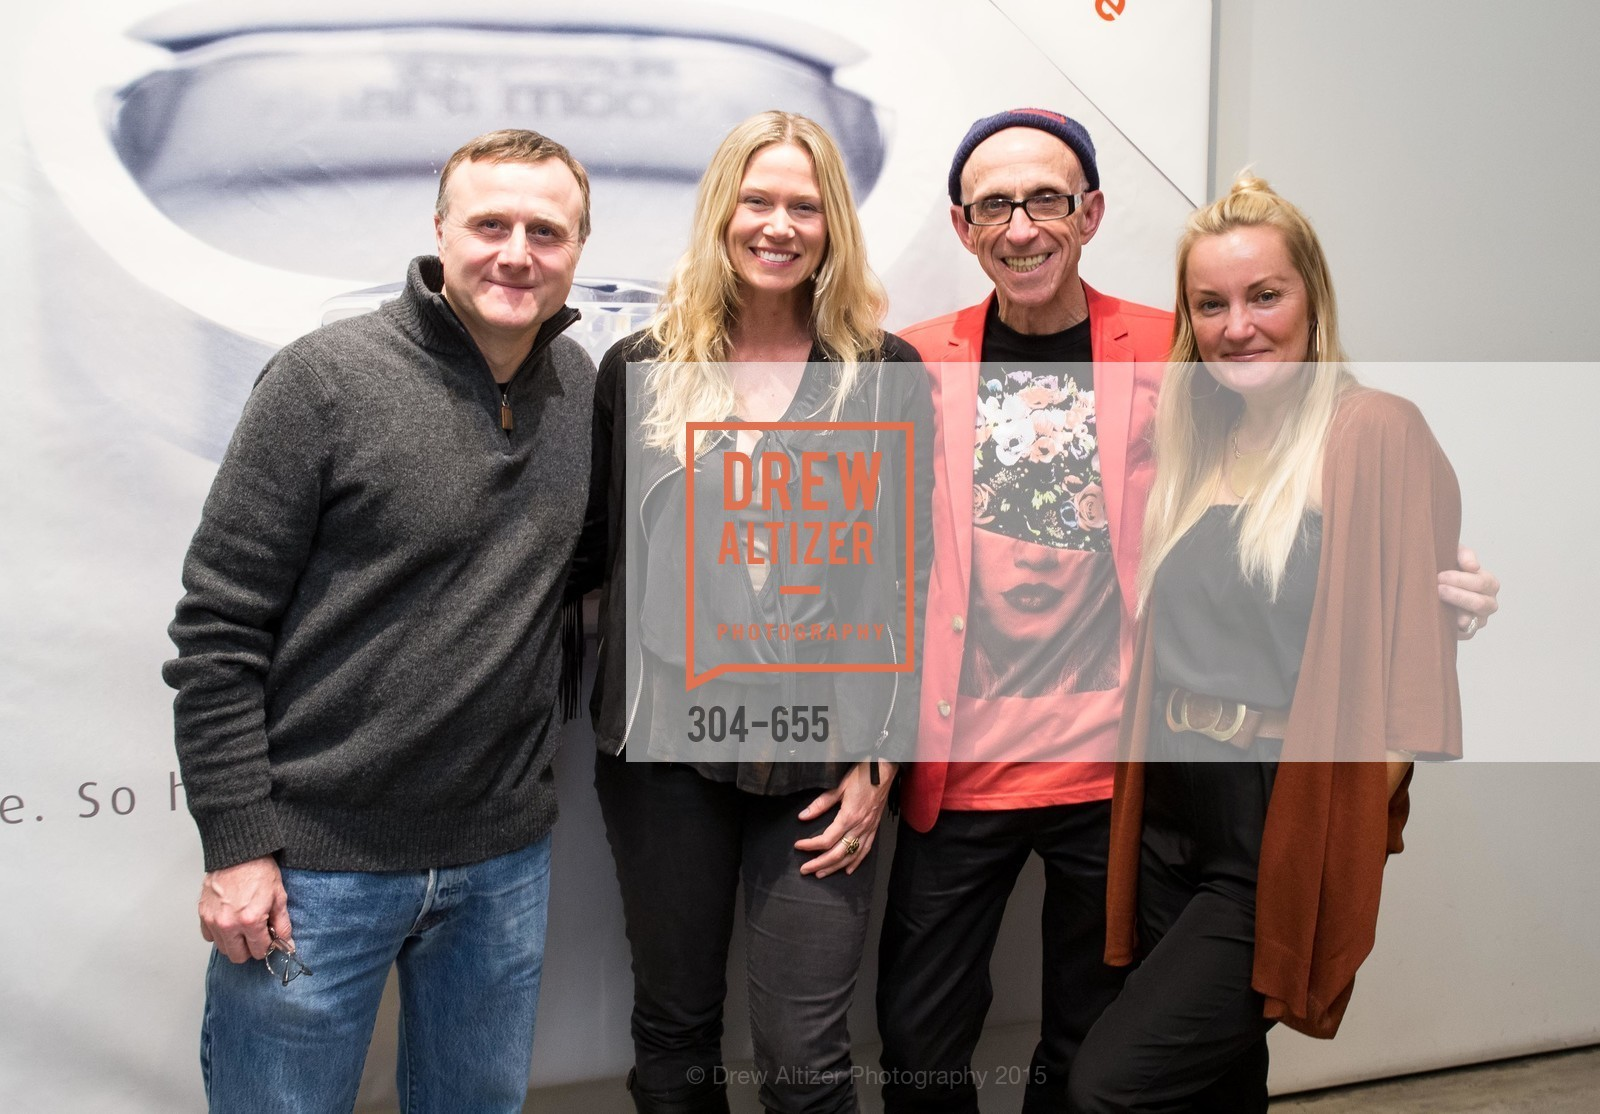 Paolo Becherini, Nicole Stephenson, Tom Seadon, Adrianne Moore, Silver Belles Soirée at Stuart Moore, Stuart Moore Gallery of Designer Jewelry. 1898 Union Street, December 17th, 2015,Drew Altizer, Drew Altizer Photography, full-service agency, private events, San Francisco photographer, photographer california